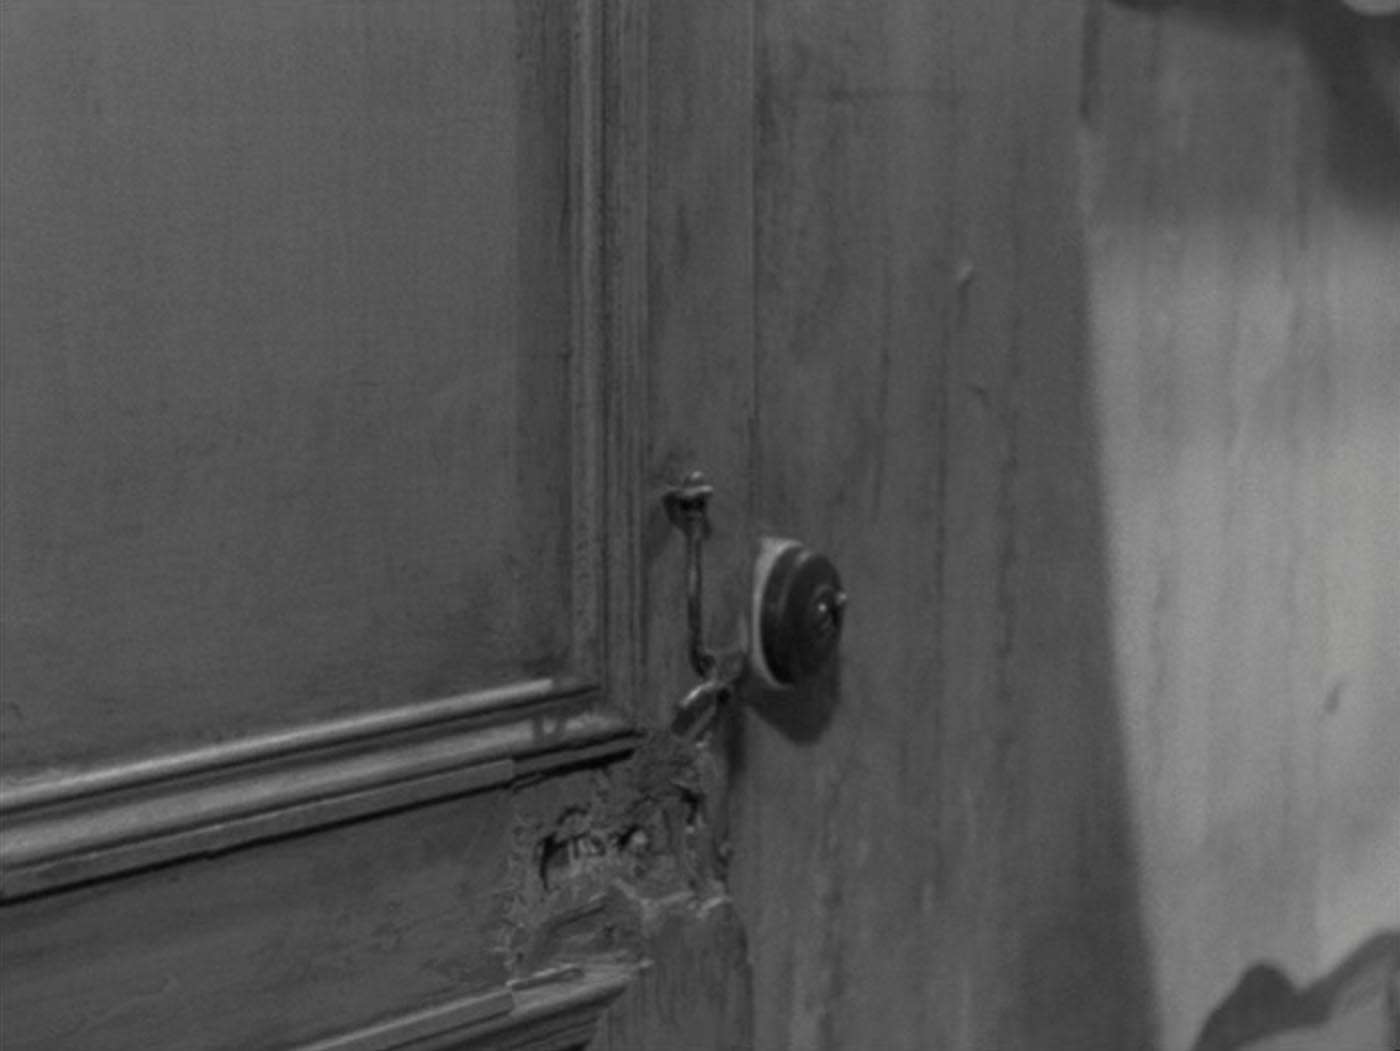 Still from <i>Pickpocket</i> by Robert Bresson, 1959